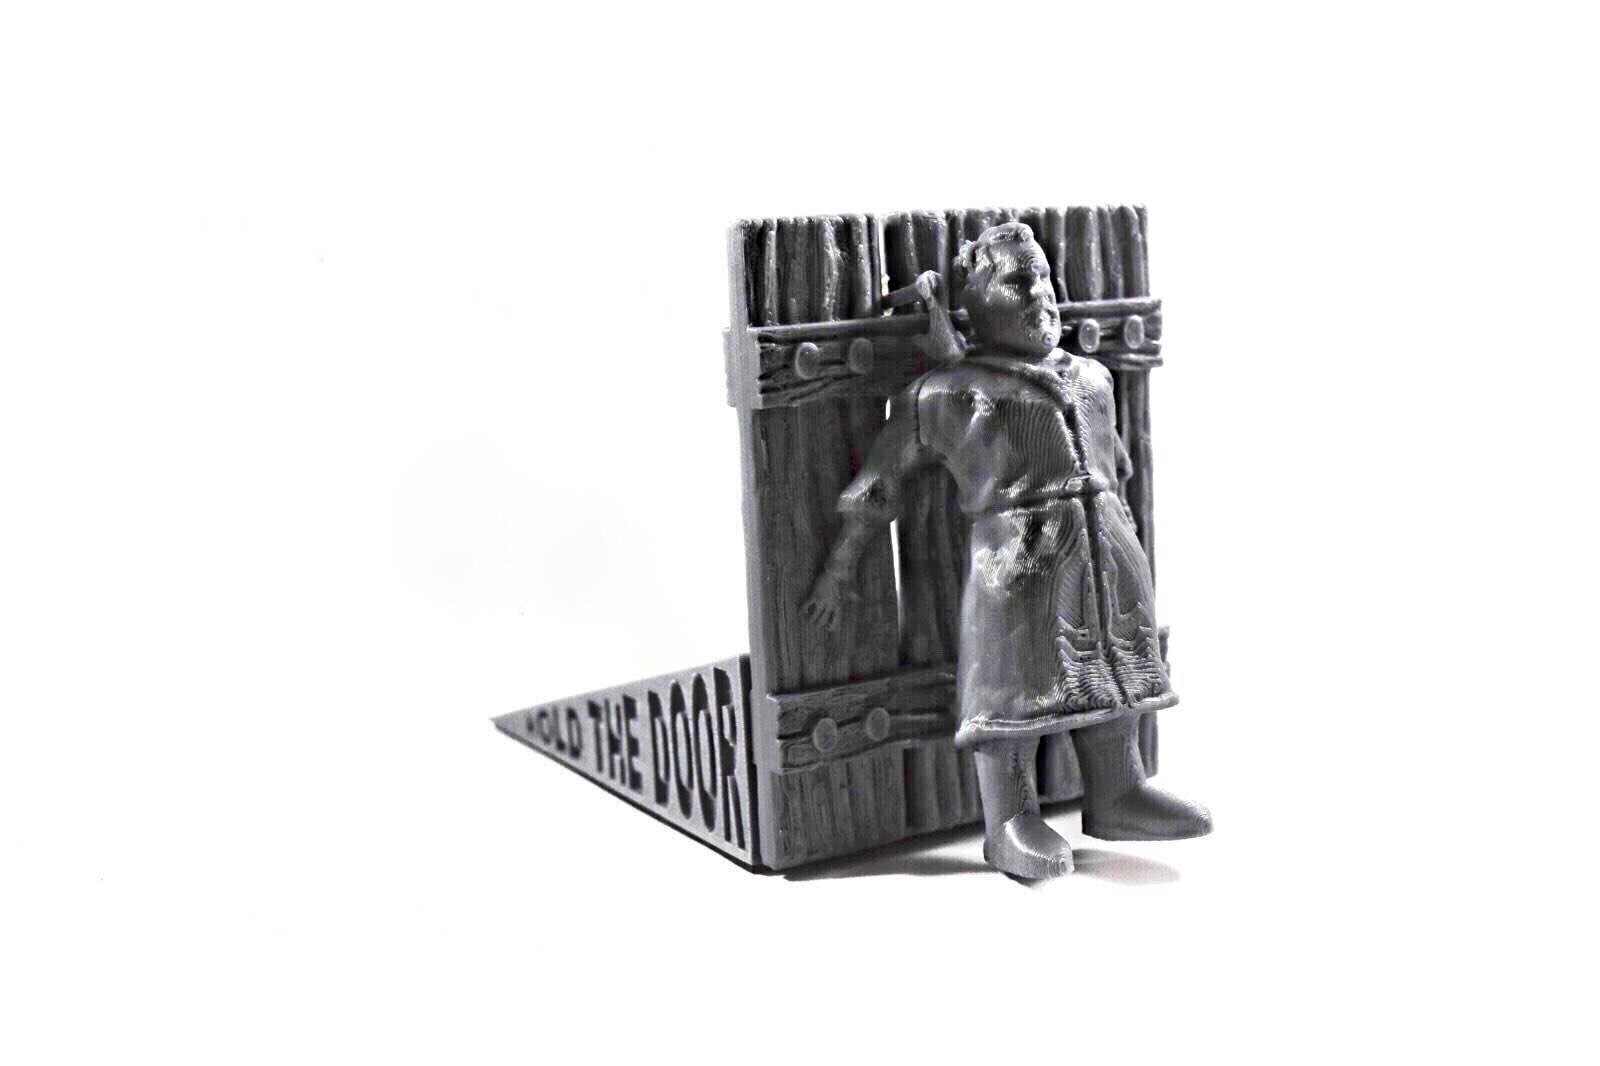 Game of Thrones Door Stop - Hold the Door - Door Jam - Best Hodor Doorstop - Games of Thrones Gift - Home Decor - Door Stopper - GOT Decor  sc 1 st  3D Visuals u0026 Design Co. & Game of Thrones Door Stop - Hold the Door - Door Jam - Best Hodor ...